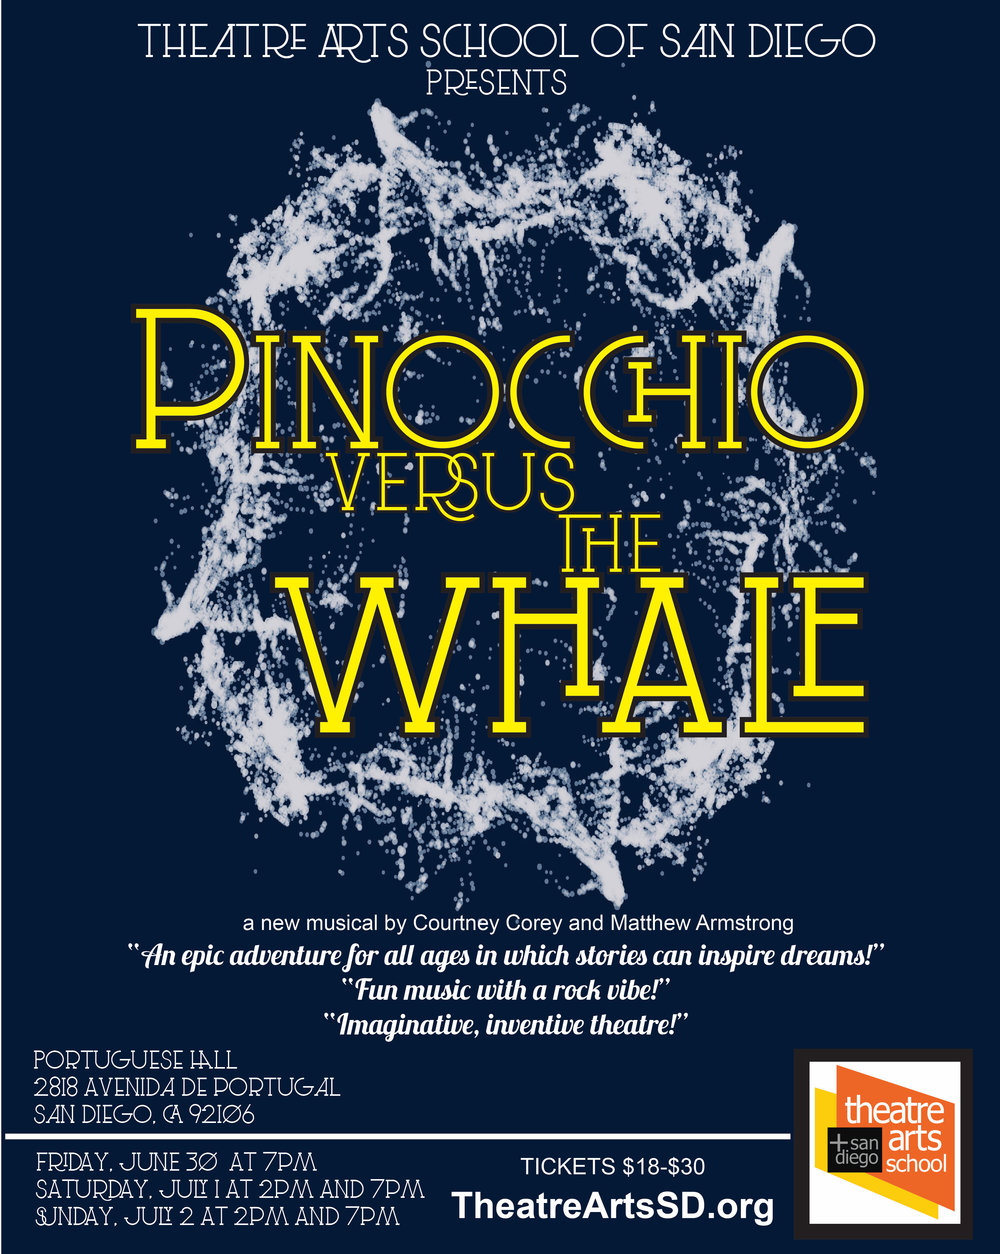 Copy of PIN V WHALE PUBLICITY POSTER.jpg